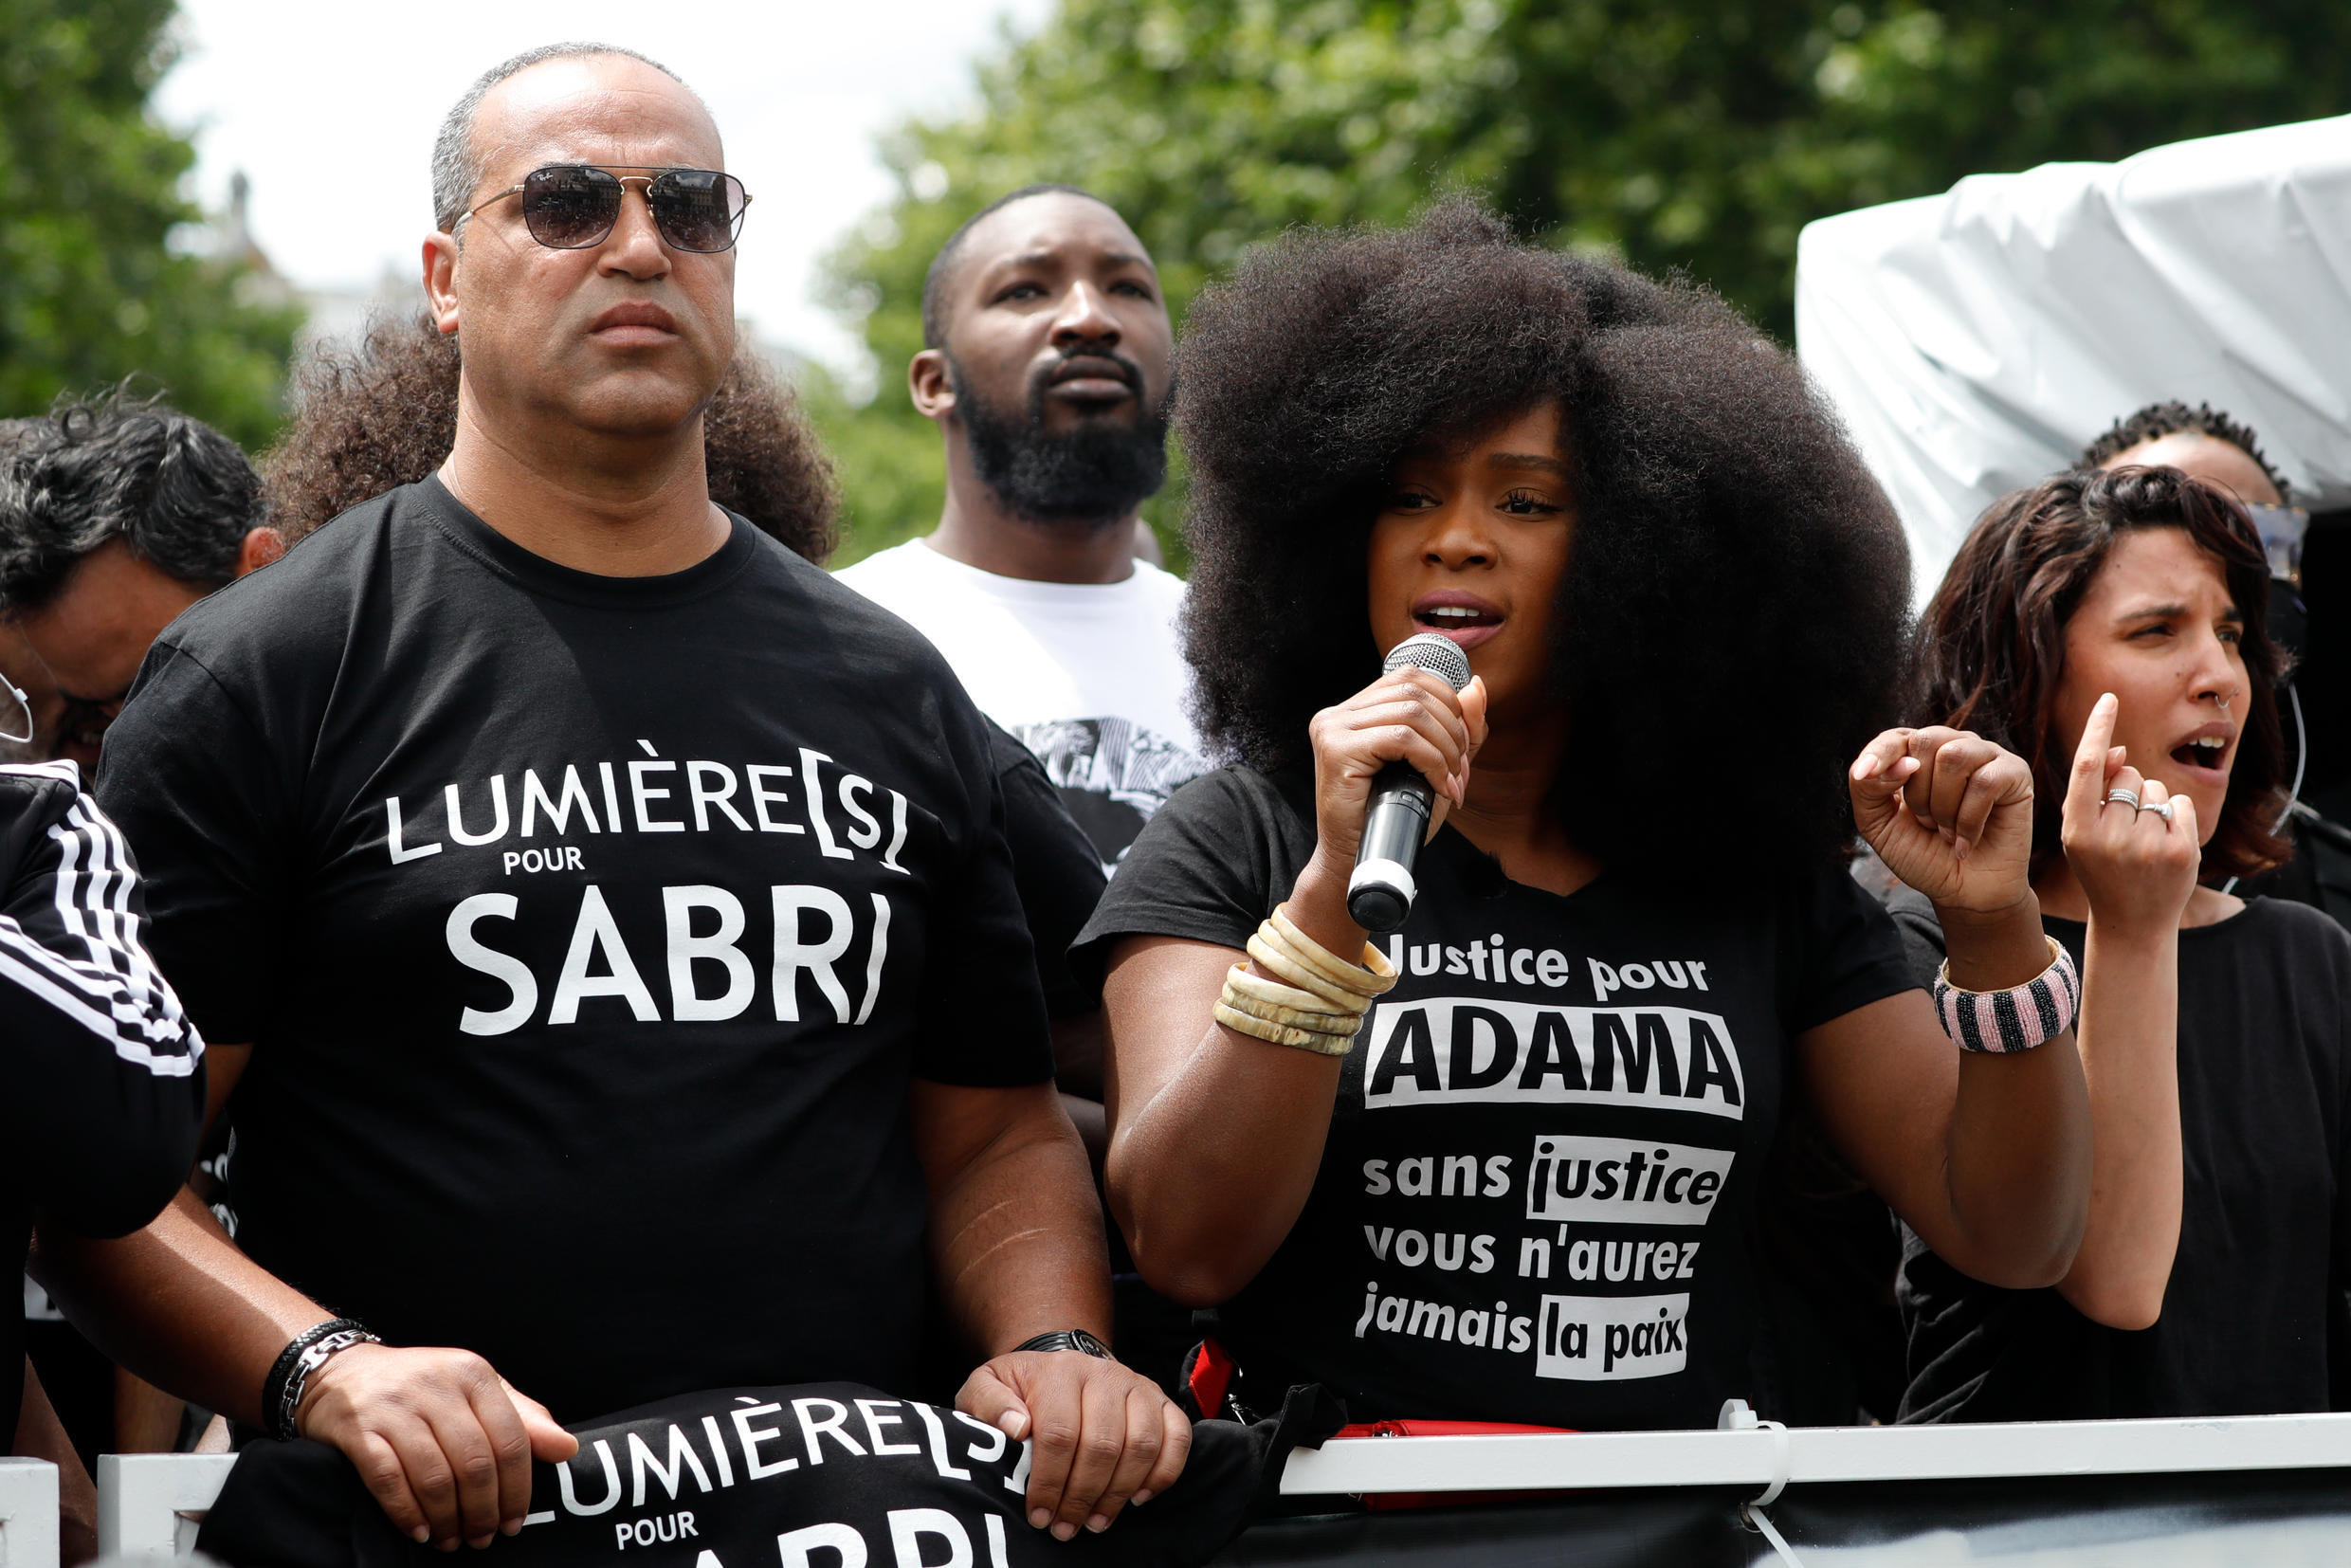 Assa Traore (C), the sister of Adama Traore, who died in police custody in 2016 speaks at rally in Paris's Place de la Republique as part of the worldwide Black Lives Matter movement against racism and police brutality, June 13, 2020.